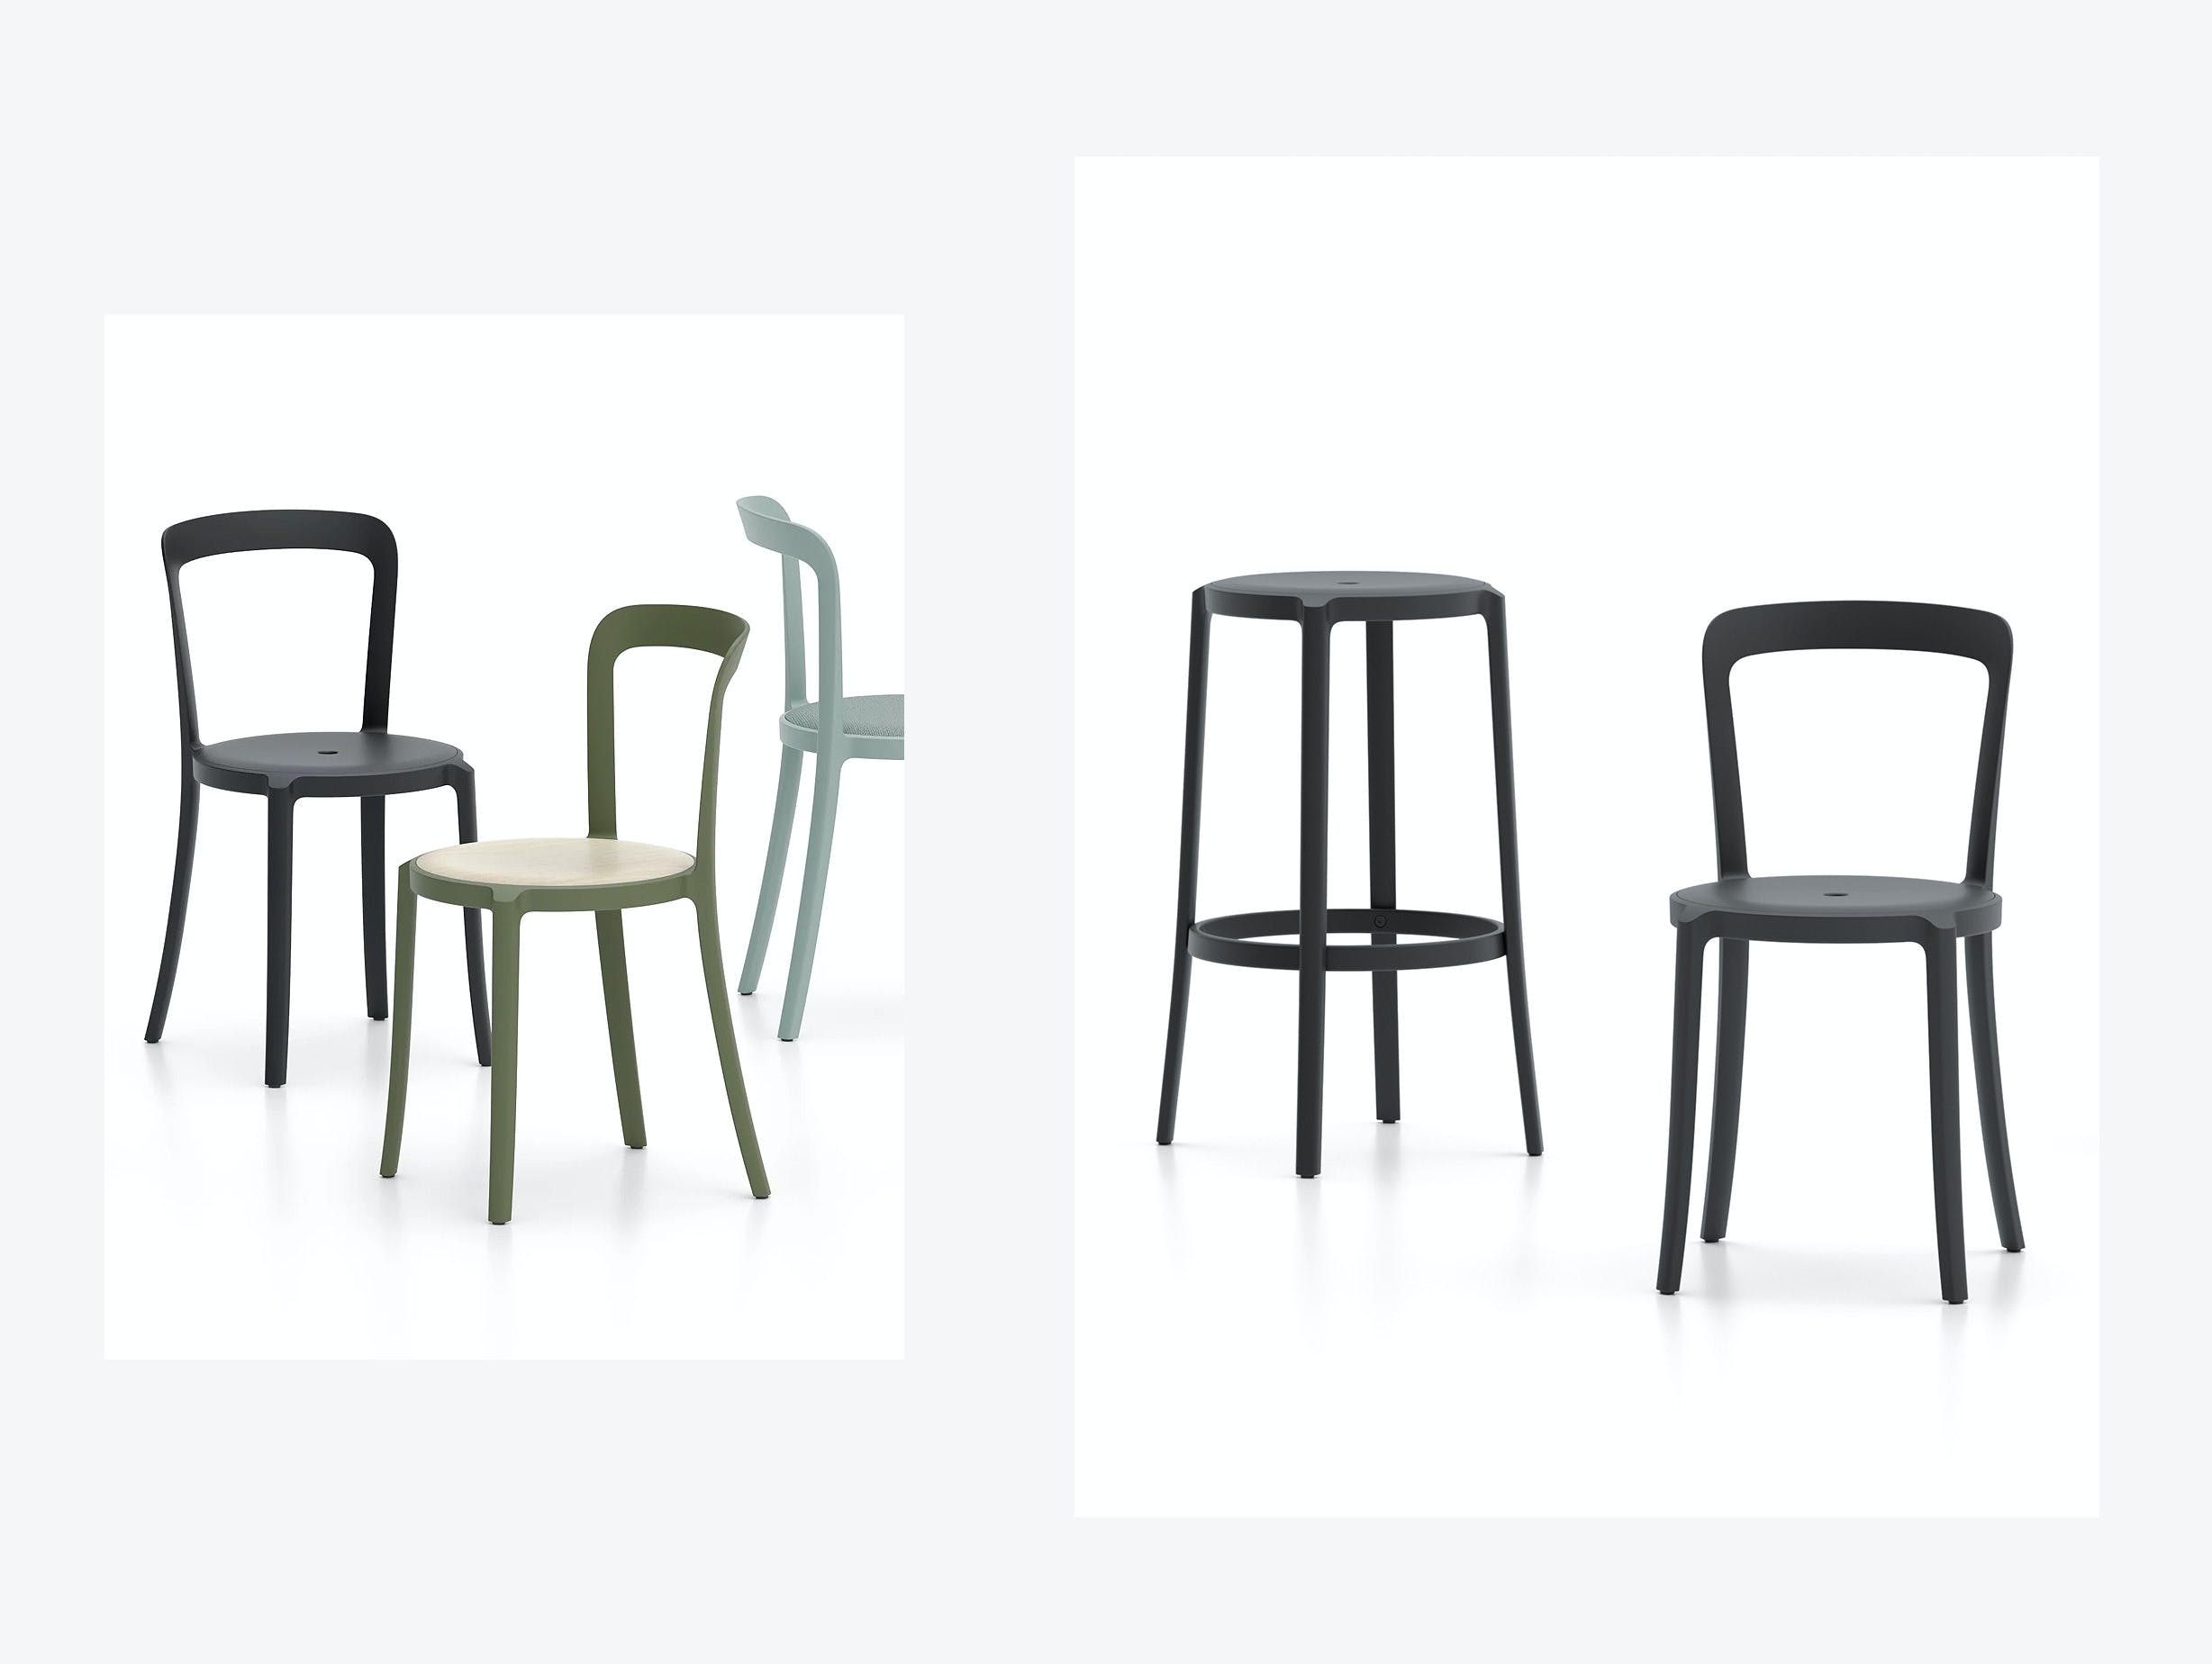 Emeco On And On Chair Stool Barber Osgerby image